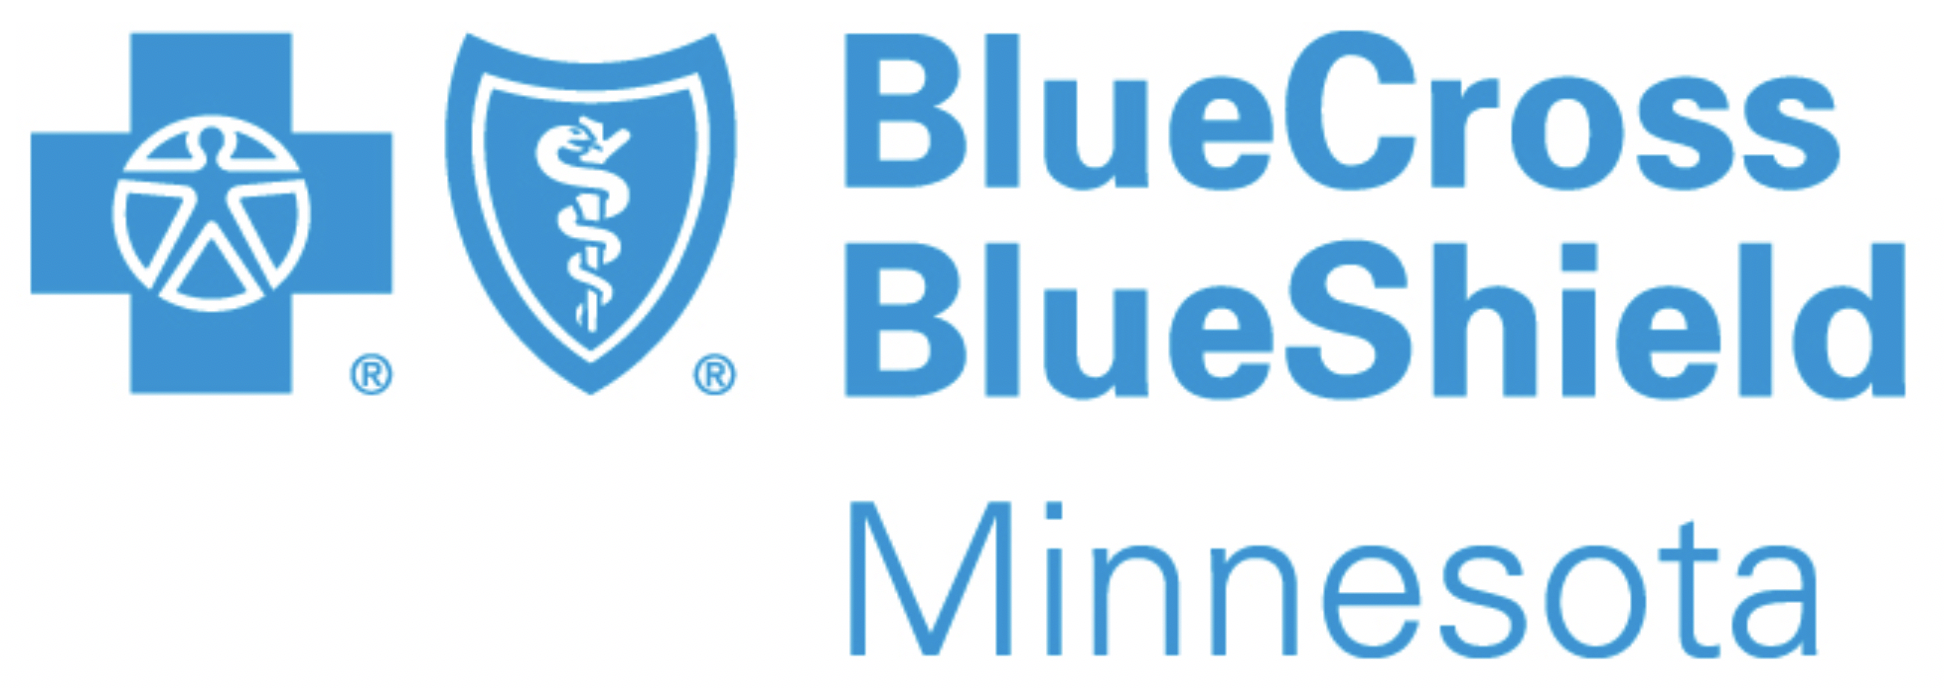 Blue Cross Blue Shield Minnesota